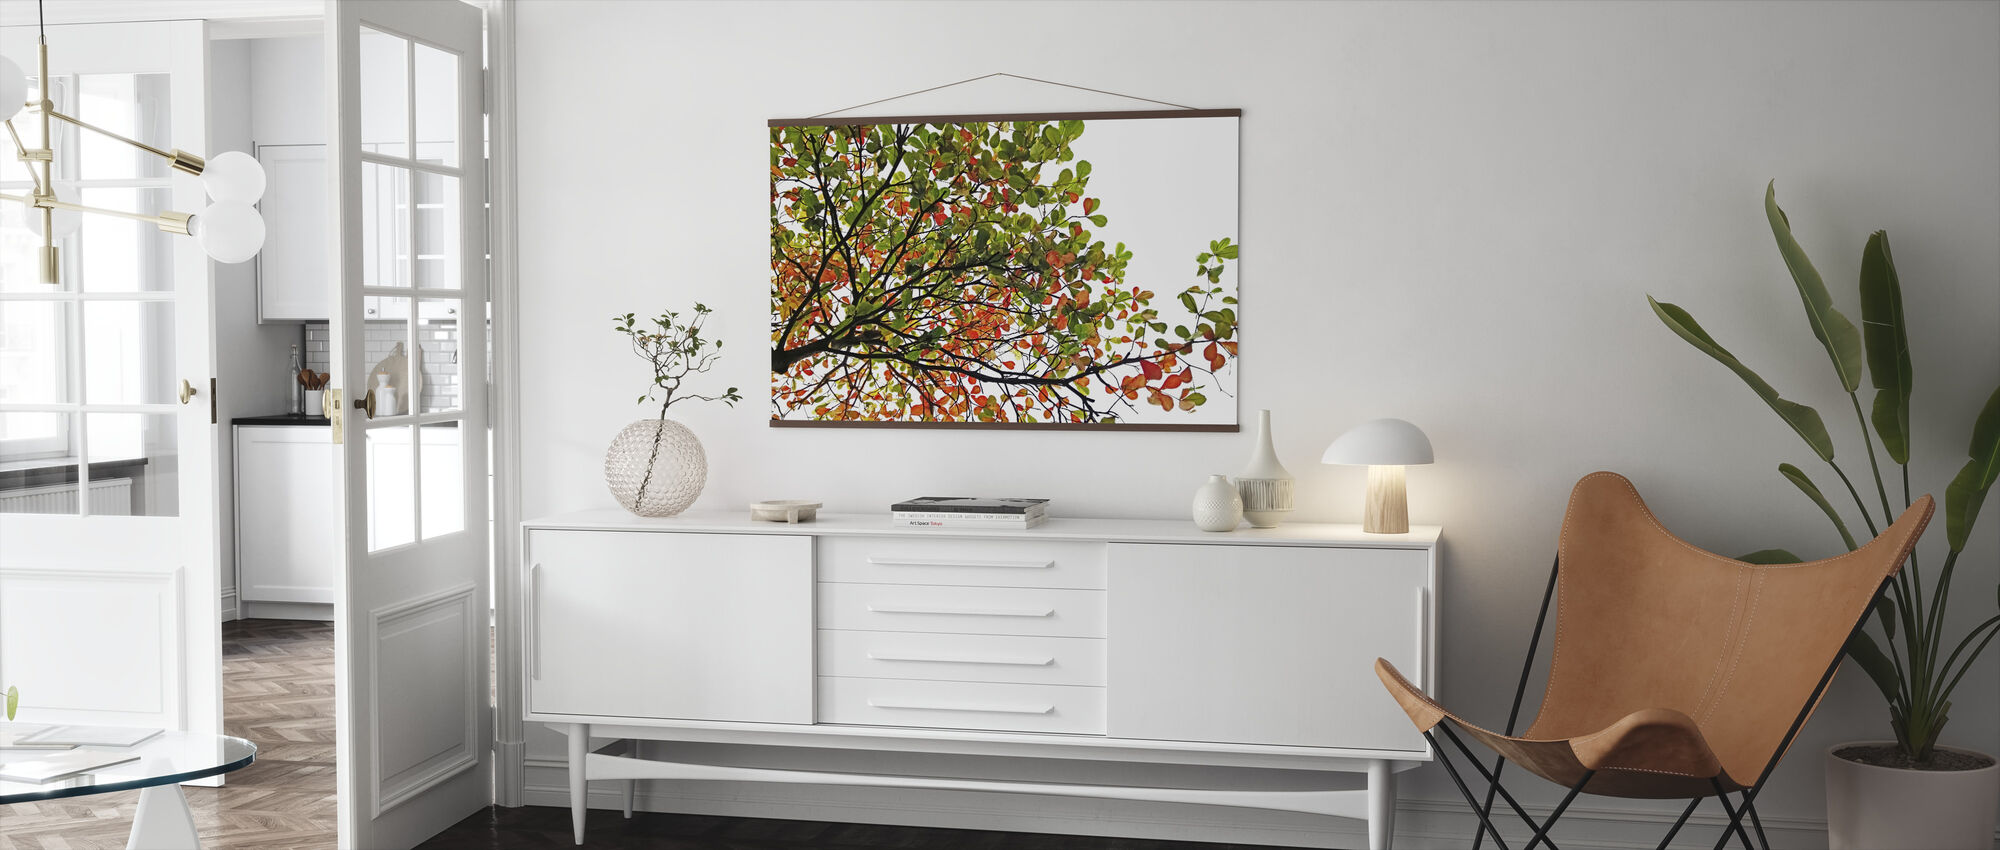 Colorful Catappa Leaves - Poster - Living Room